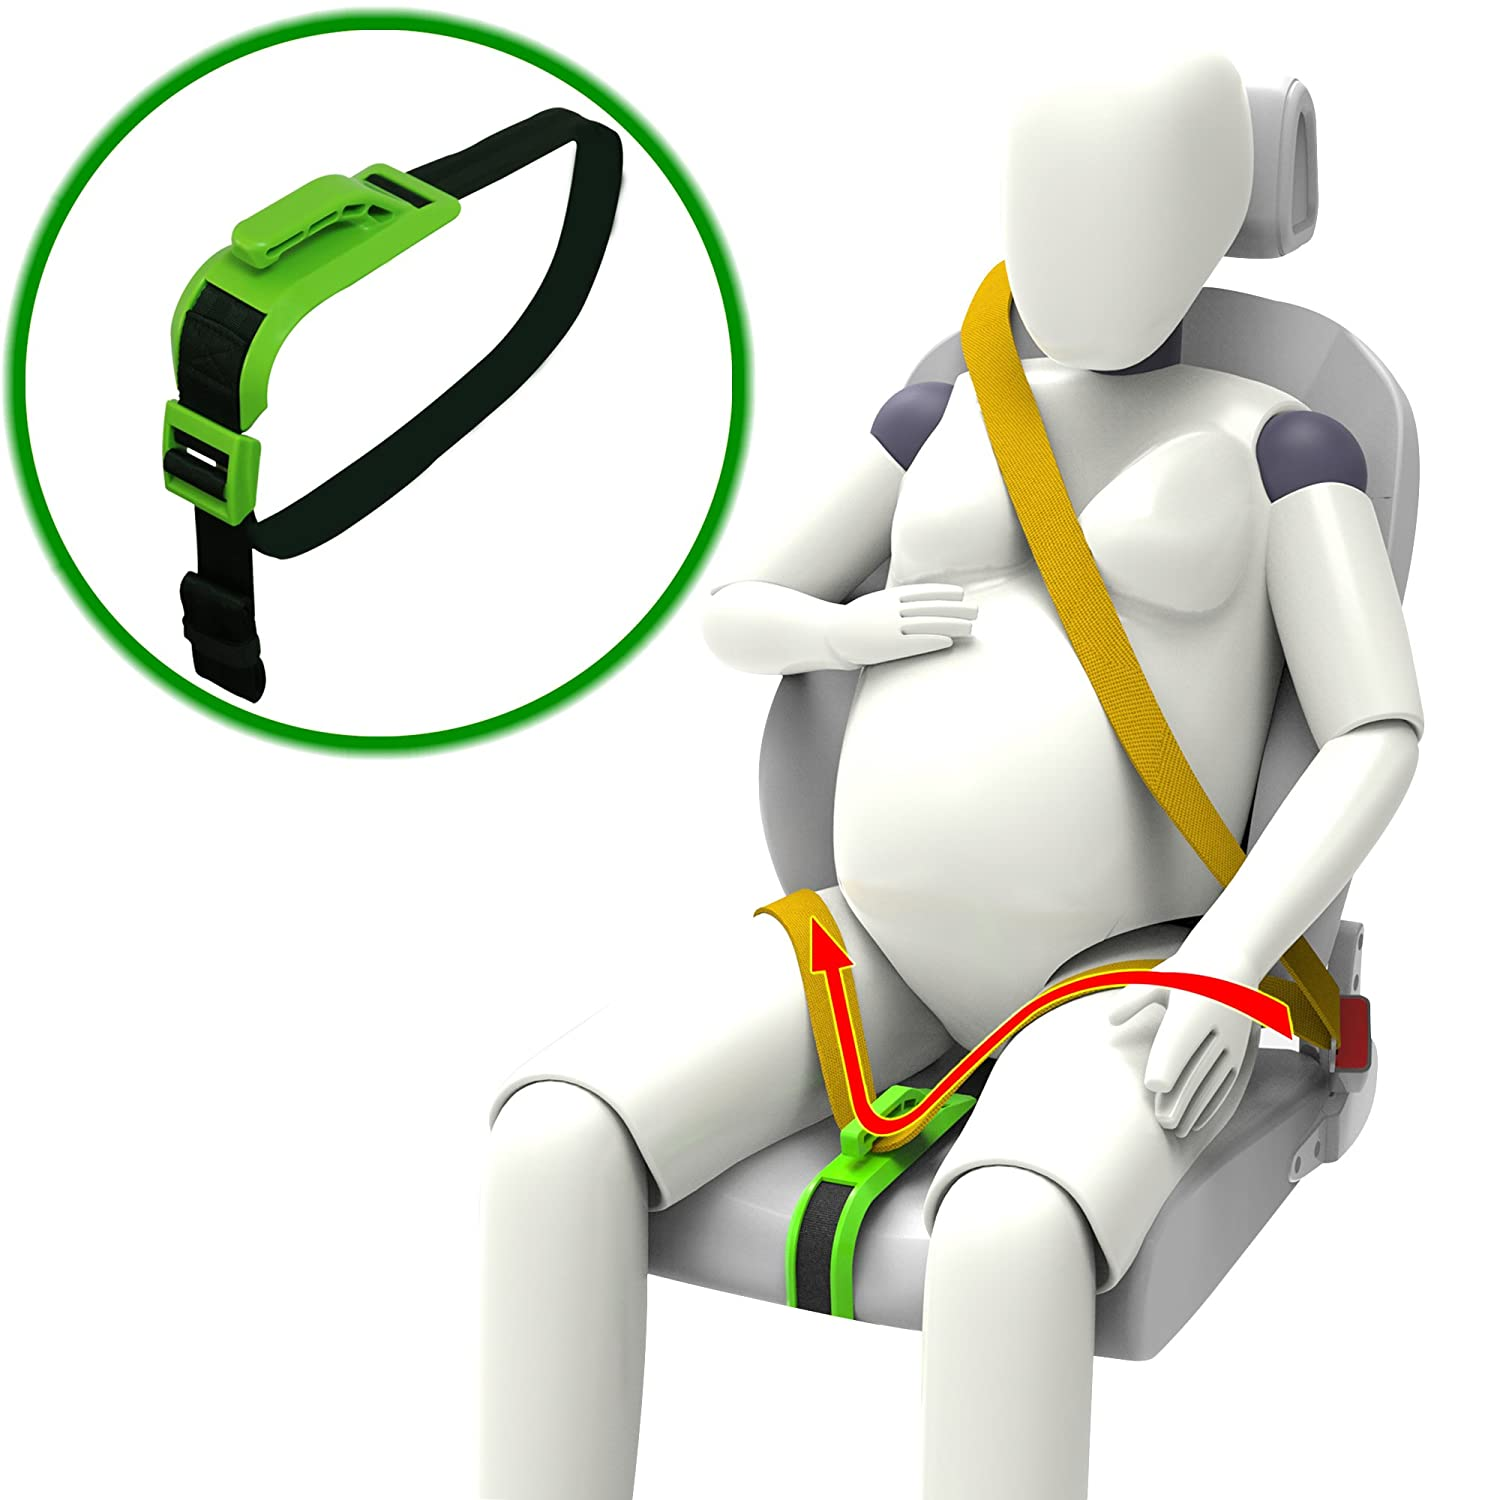 Green Protect Unborn Baby ZUWIT Maternity Car Belt Adjuster Comfort /& Safety for Pregnant Moms Belly a Must-Have for Expectant Mothers